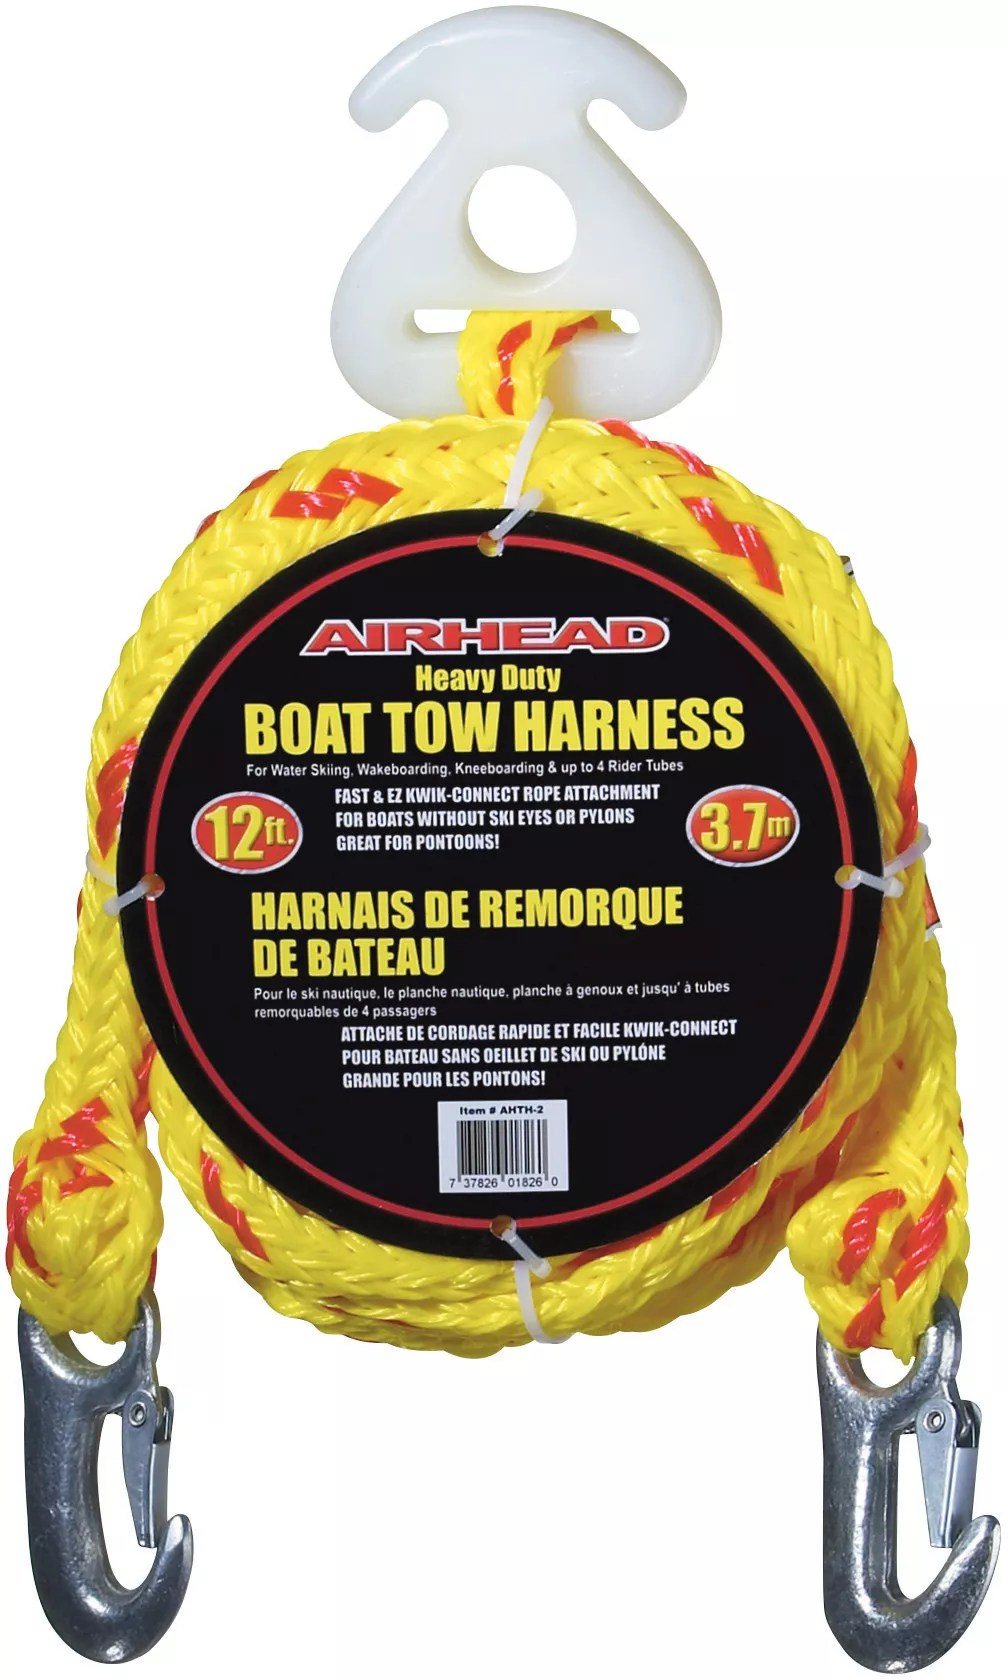 medium resolution of airhead heavy duty tow harness dick s sporting goods airhead boat tow harness airhead heavy duty tow